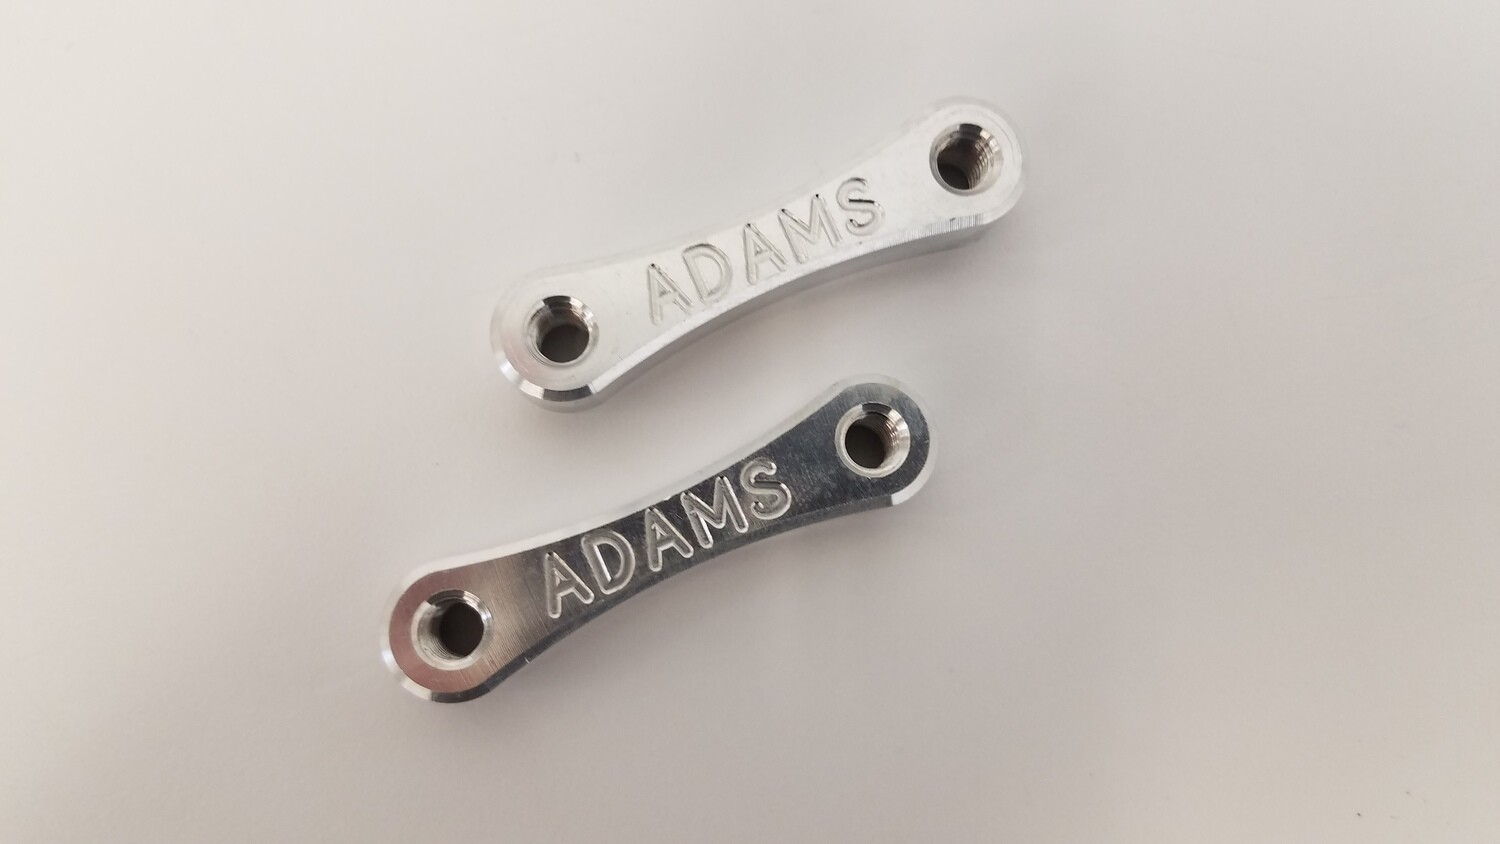 Adams Performance ZX14 Front Fender Lowering Brackets